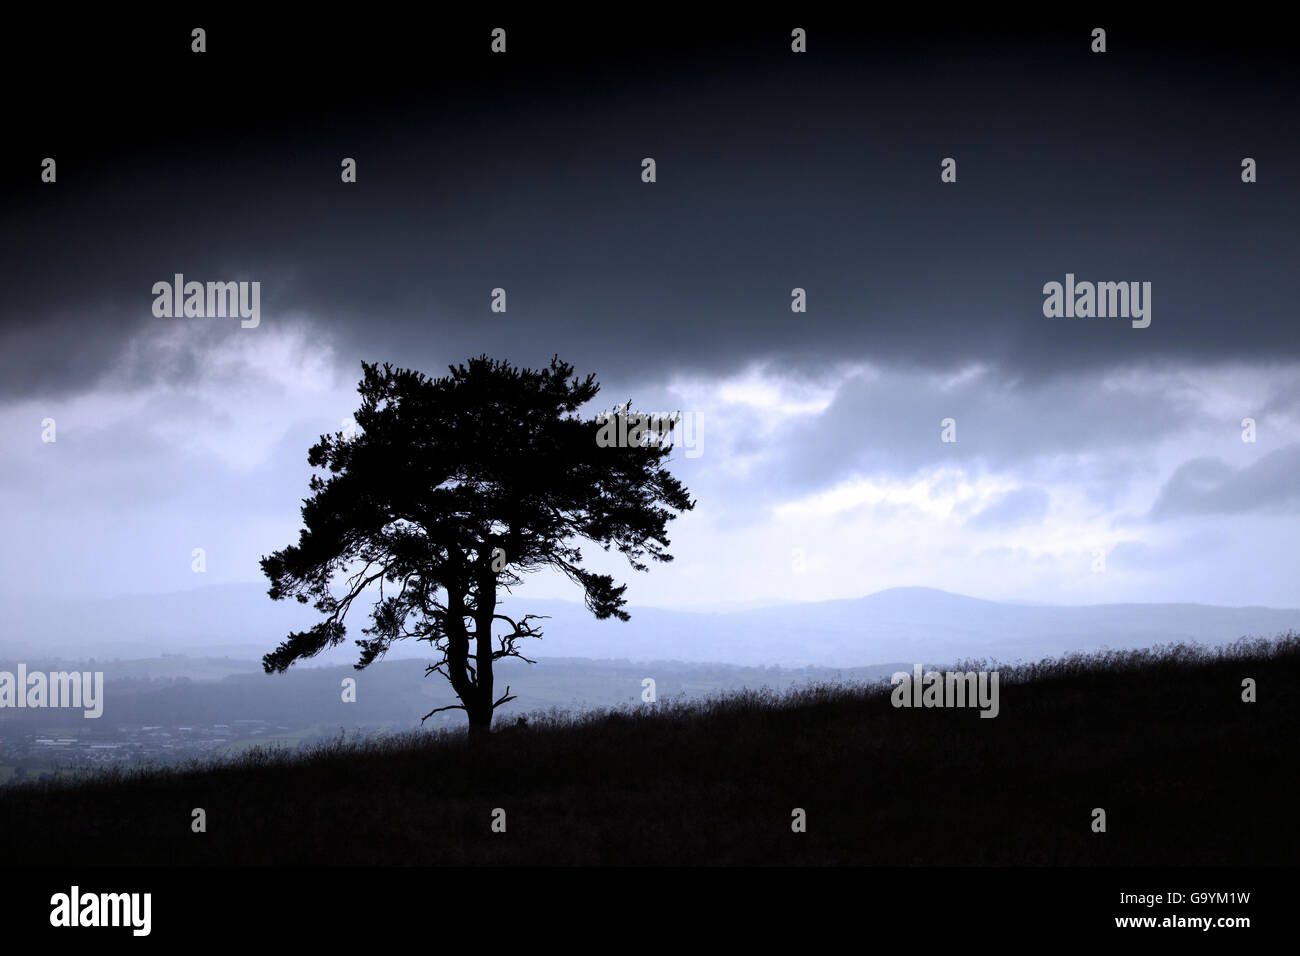 Denbighshire, UK 4th July 2016. UK Weather – Isolated tree with vale of clwyd in distance - Stock Image